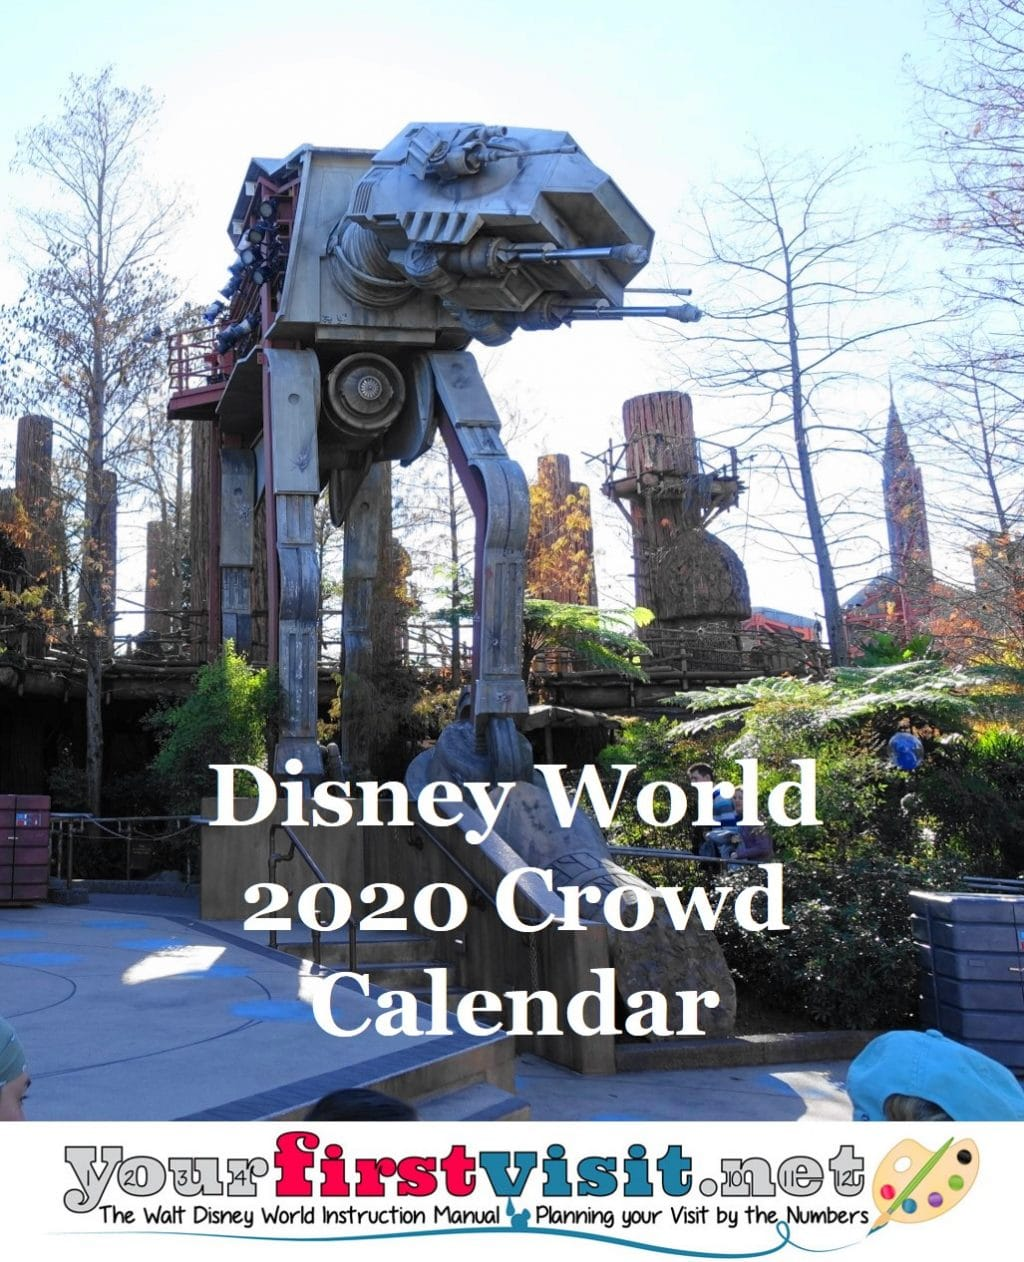 Wdw Crowd Calendar 2020 Disney World Crowds in 2020   yourfirstvisit.net